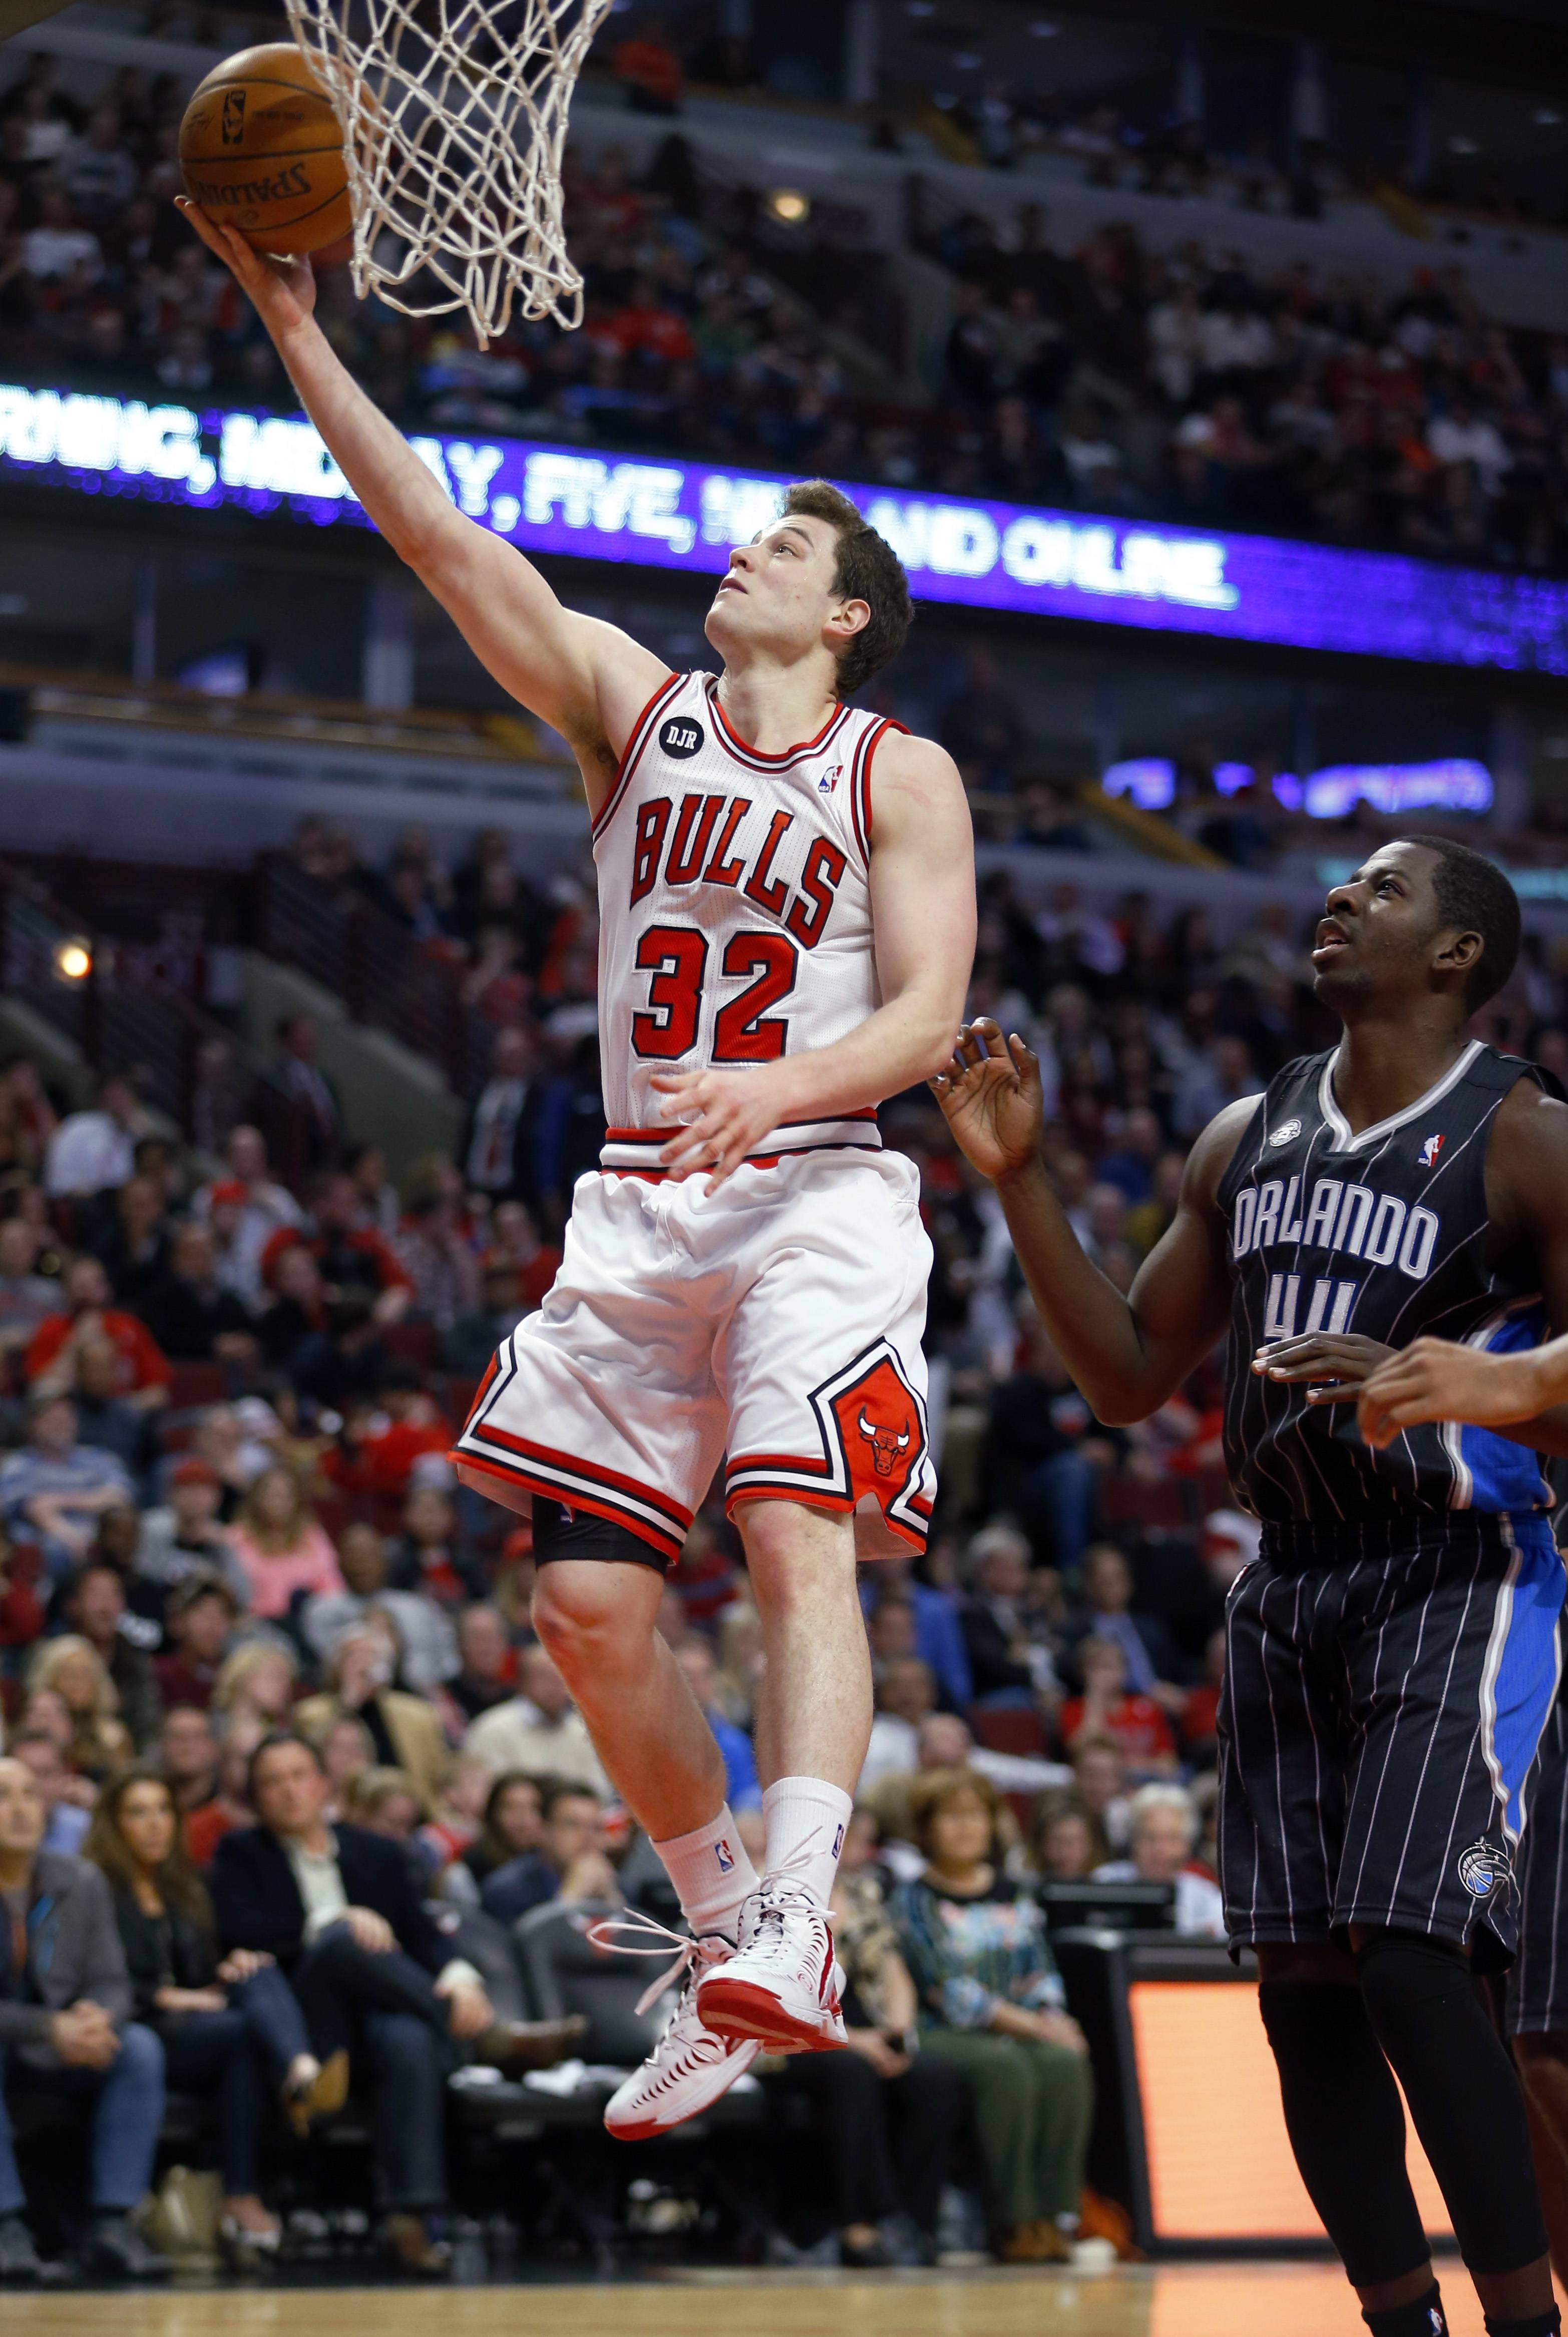 Bulls' Fredette doesn't disappoint